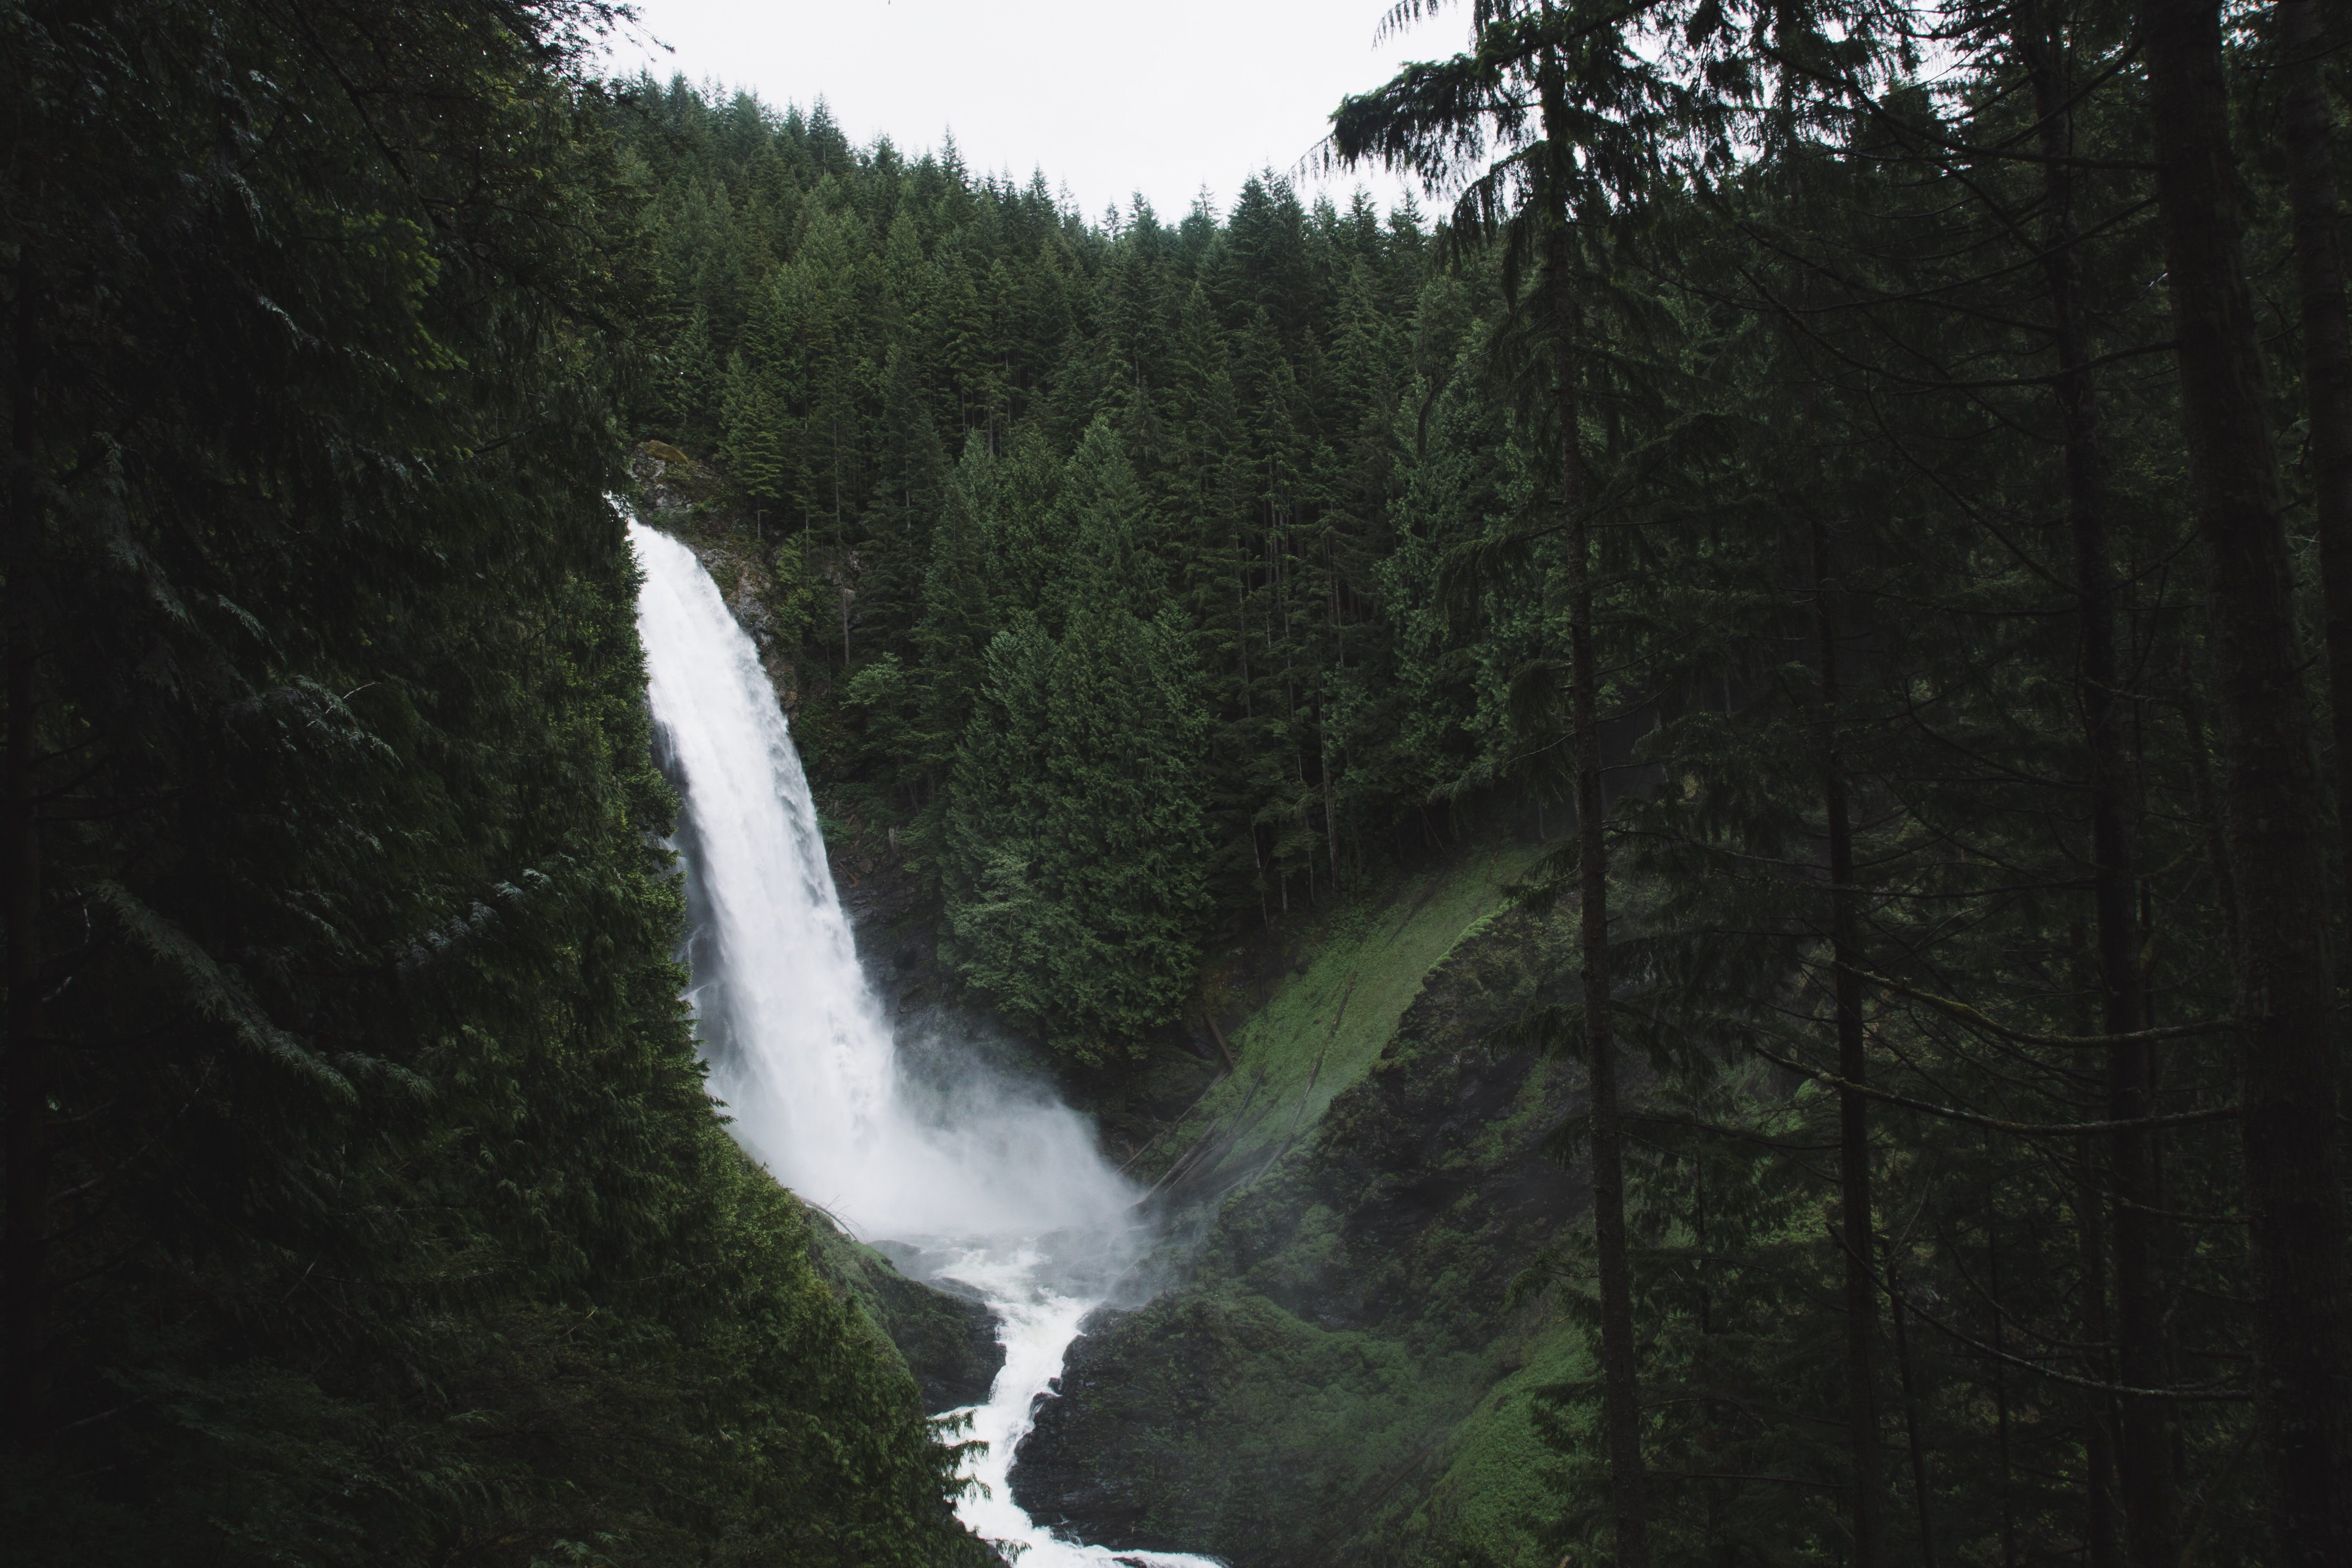 A waterfall in a recess in the middle of a forest